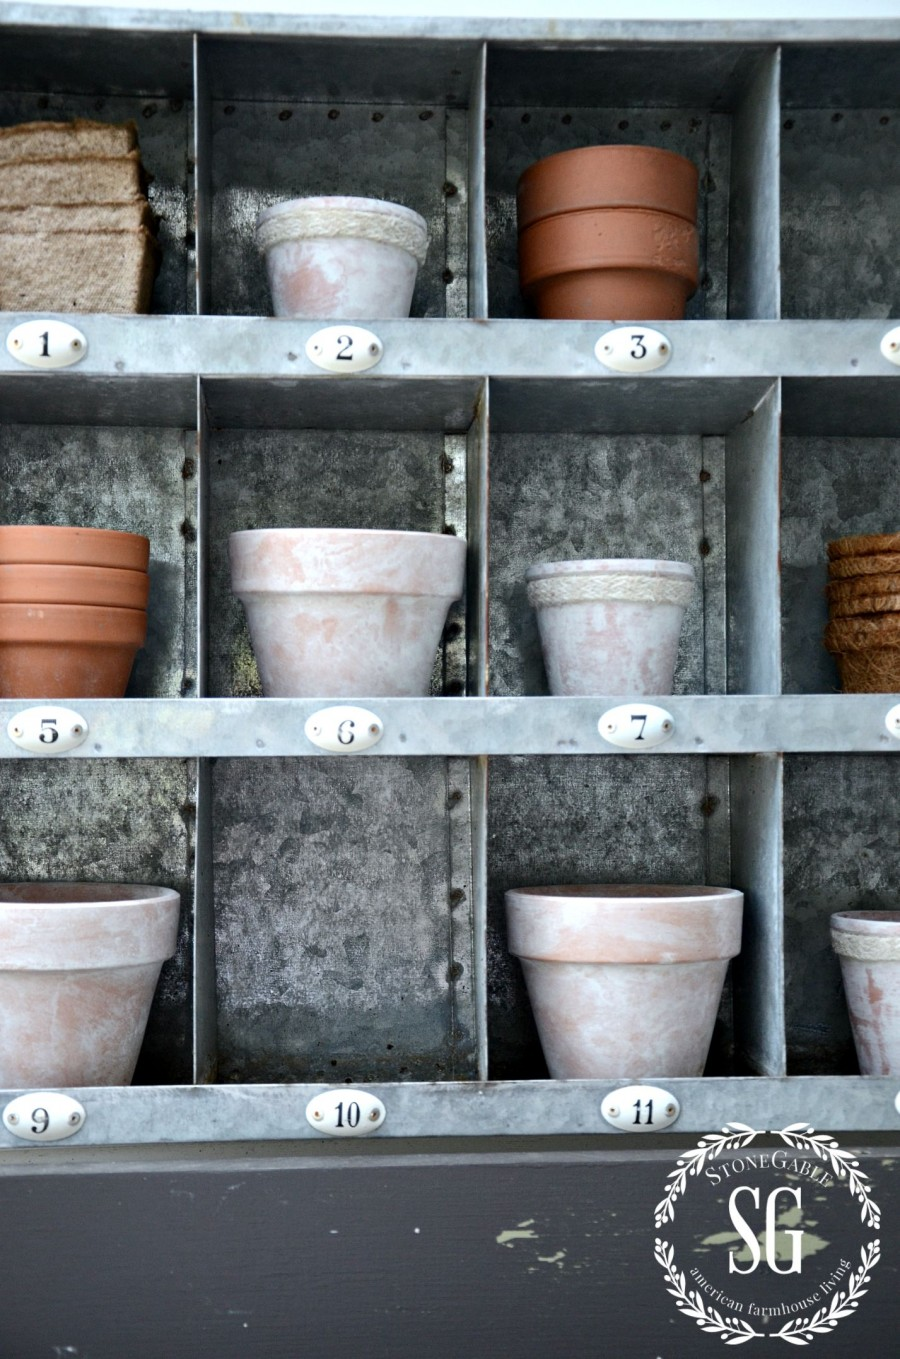 AGING TERRACOTTA POTS WITH PAINT- aged pots in galvanized cubby-stonegableblog.com